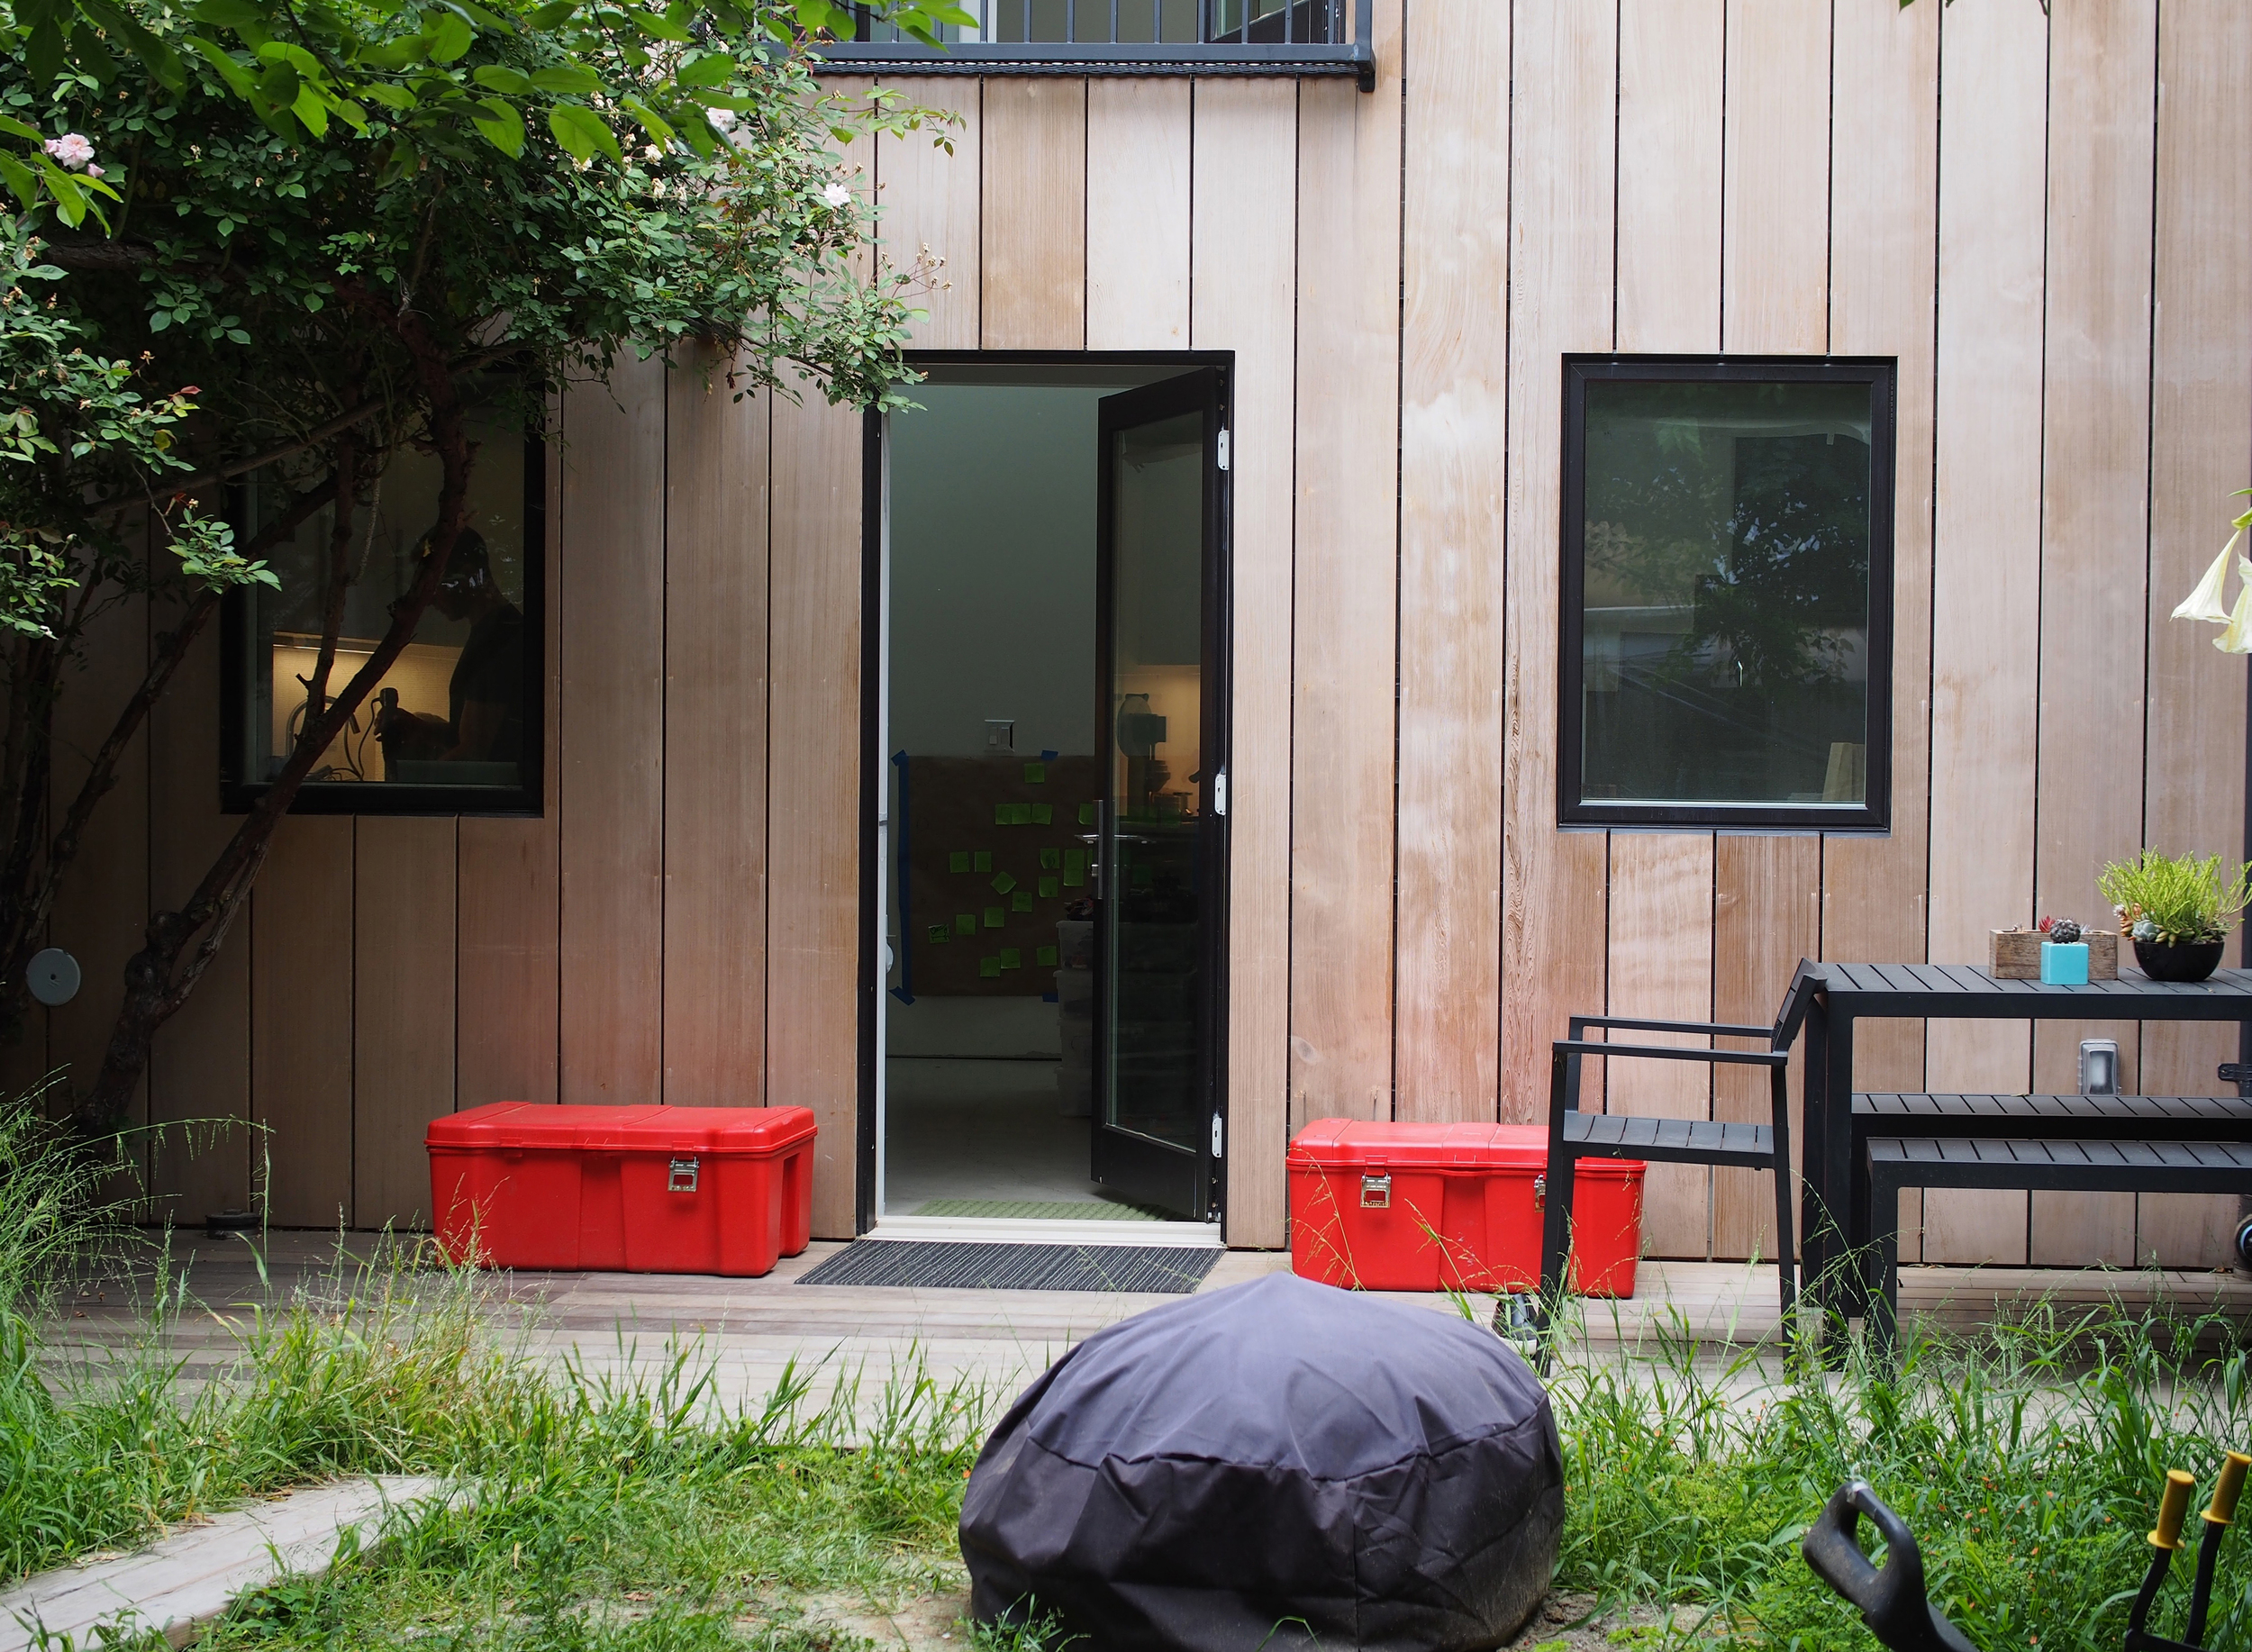 Red storage boxes house the family shoe collection punctuate their outdoor space - a welcome extension to their living area.